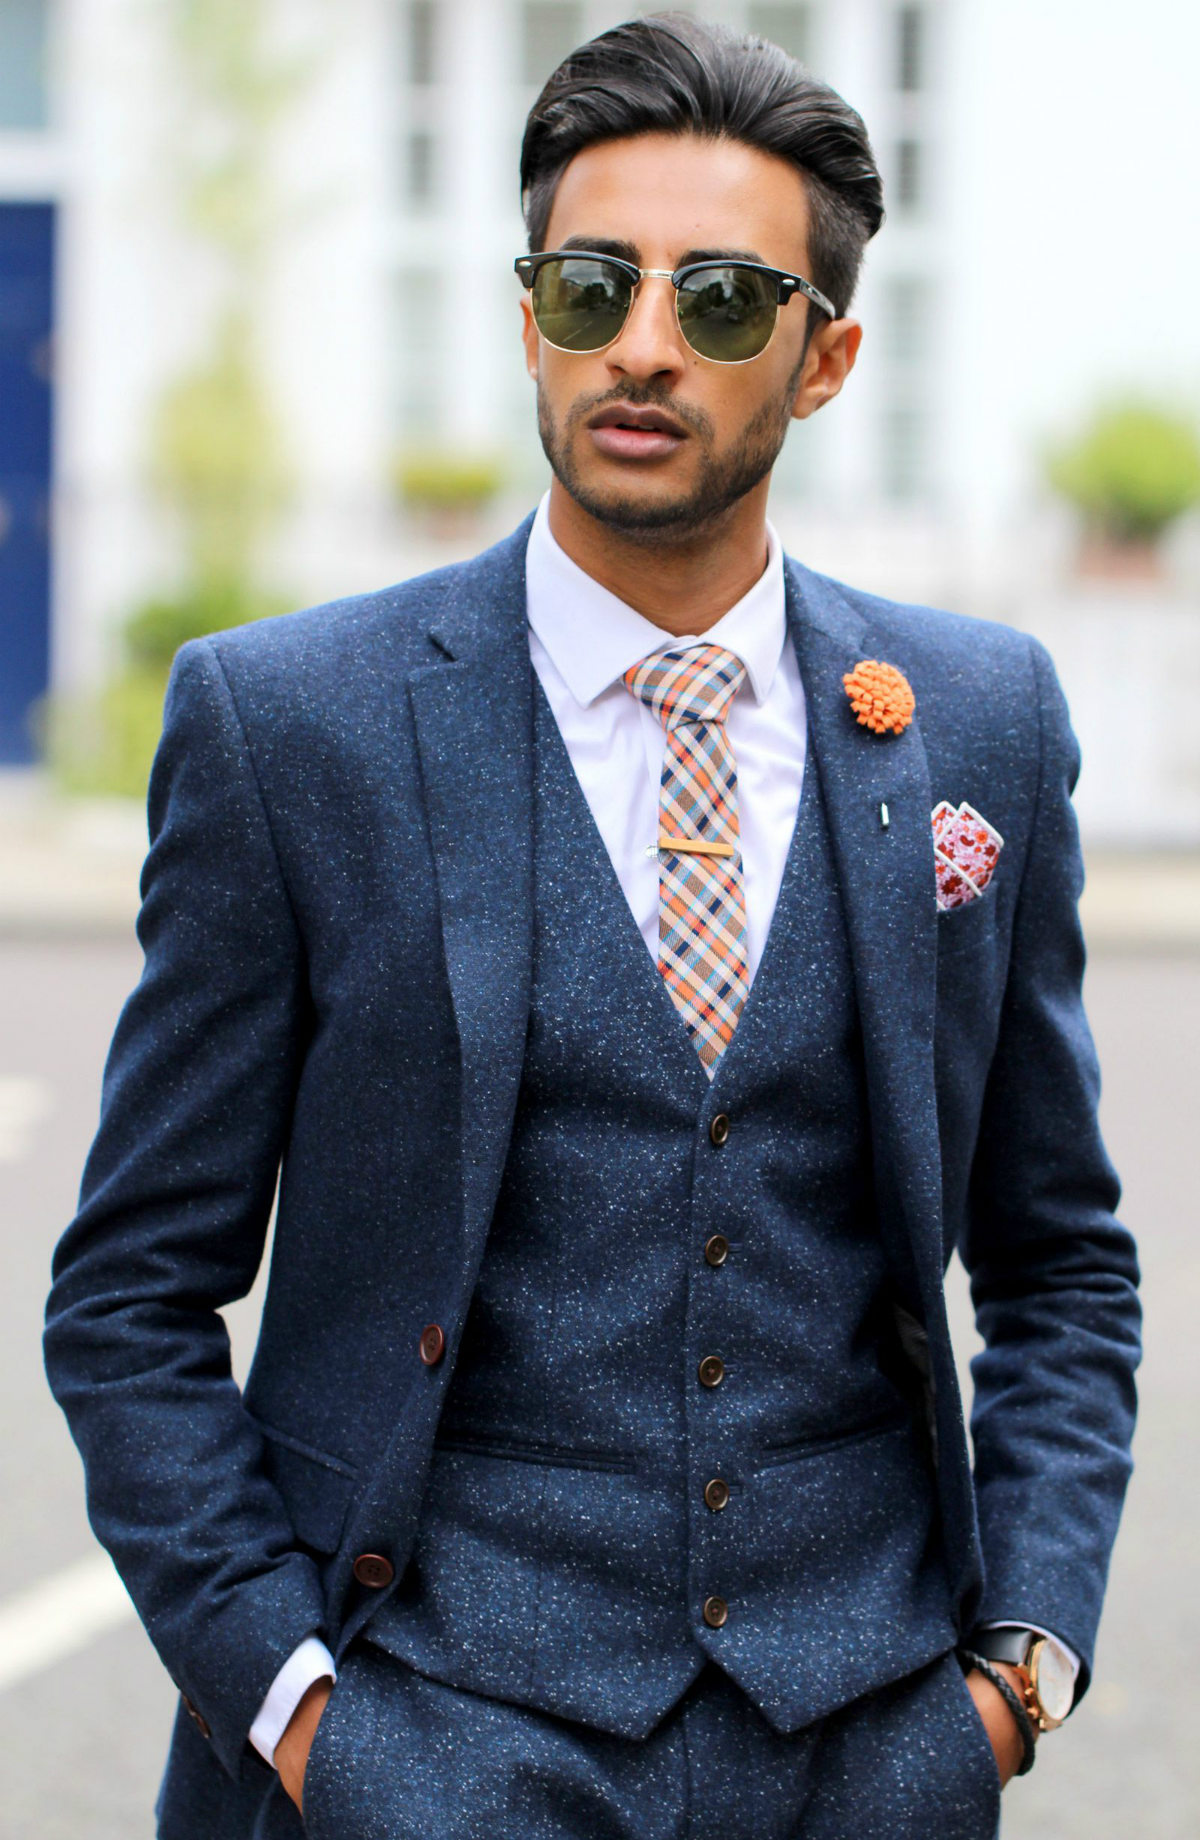 man-in-the-suit-with-the-pocket-square-tie-lapel-pin-and-other-accessories-1600